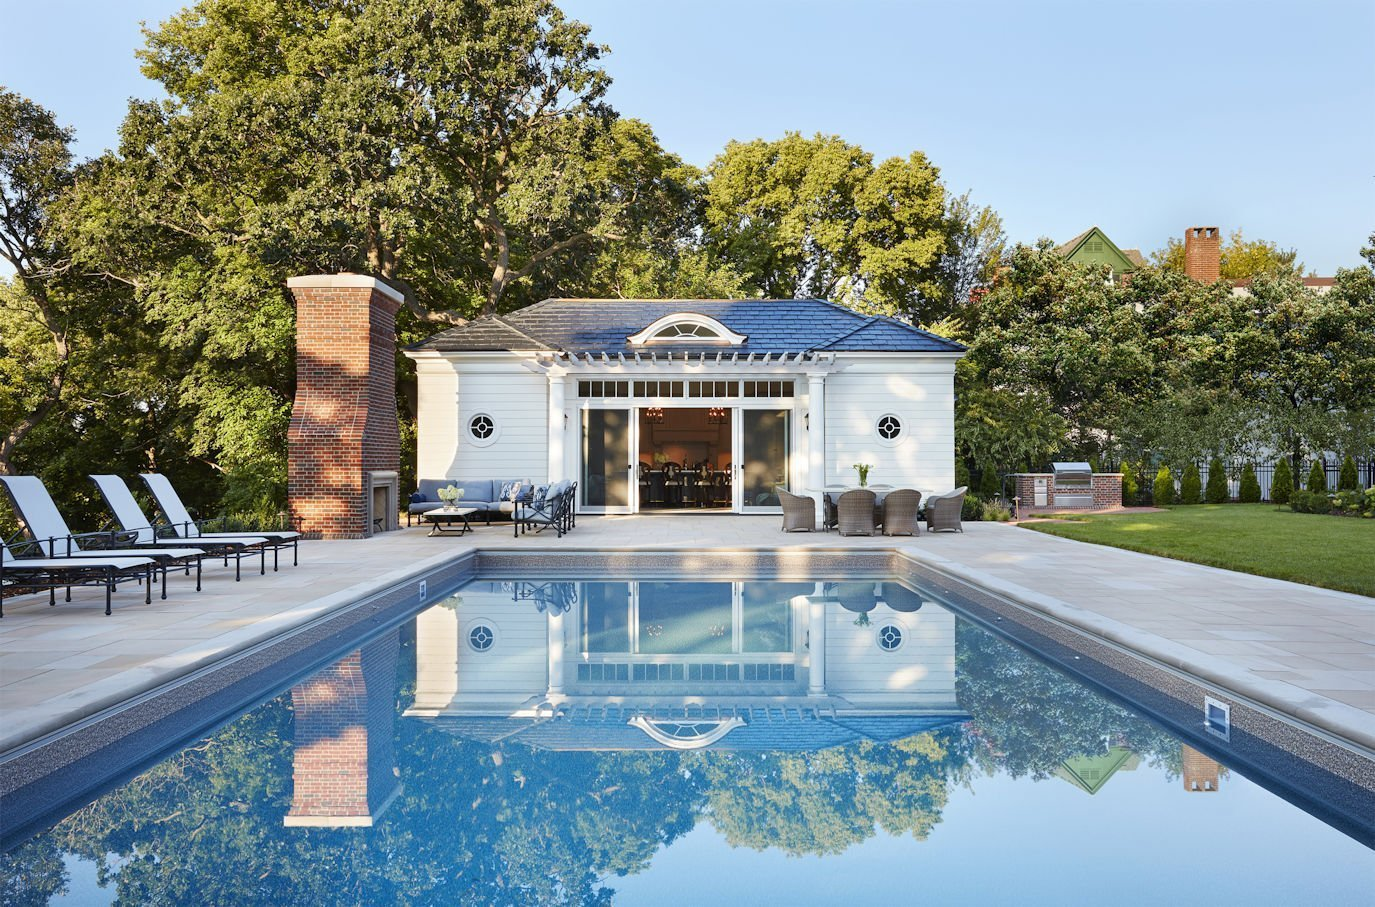 Crocus Hill Pool House - Charlie & Co. Design